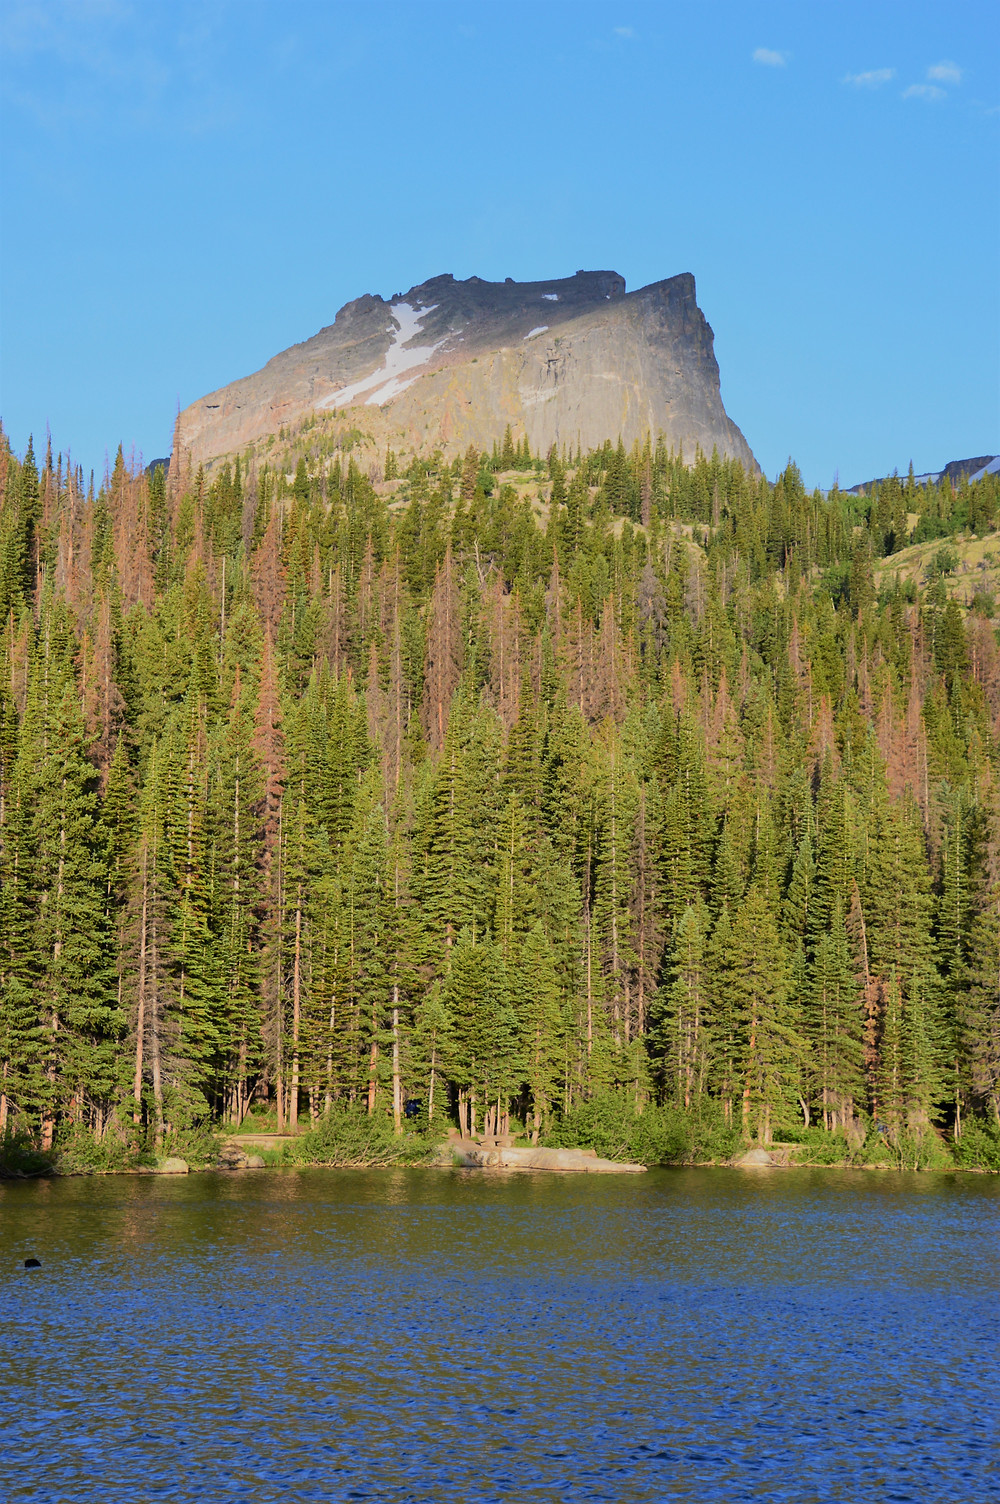 The trail starts off along the shores of Bear Lake with a beautiful view of Hallett Peak in Rocky Mountain National Park